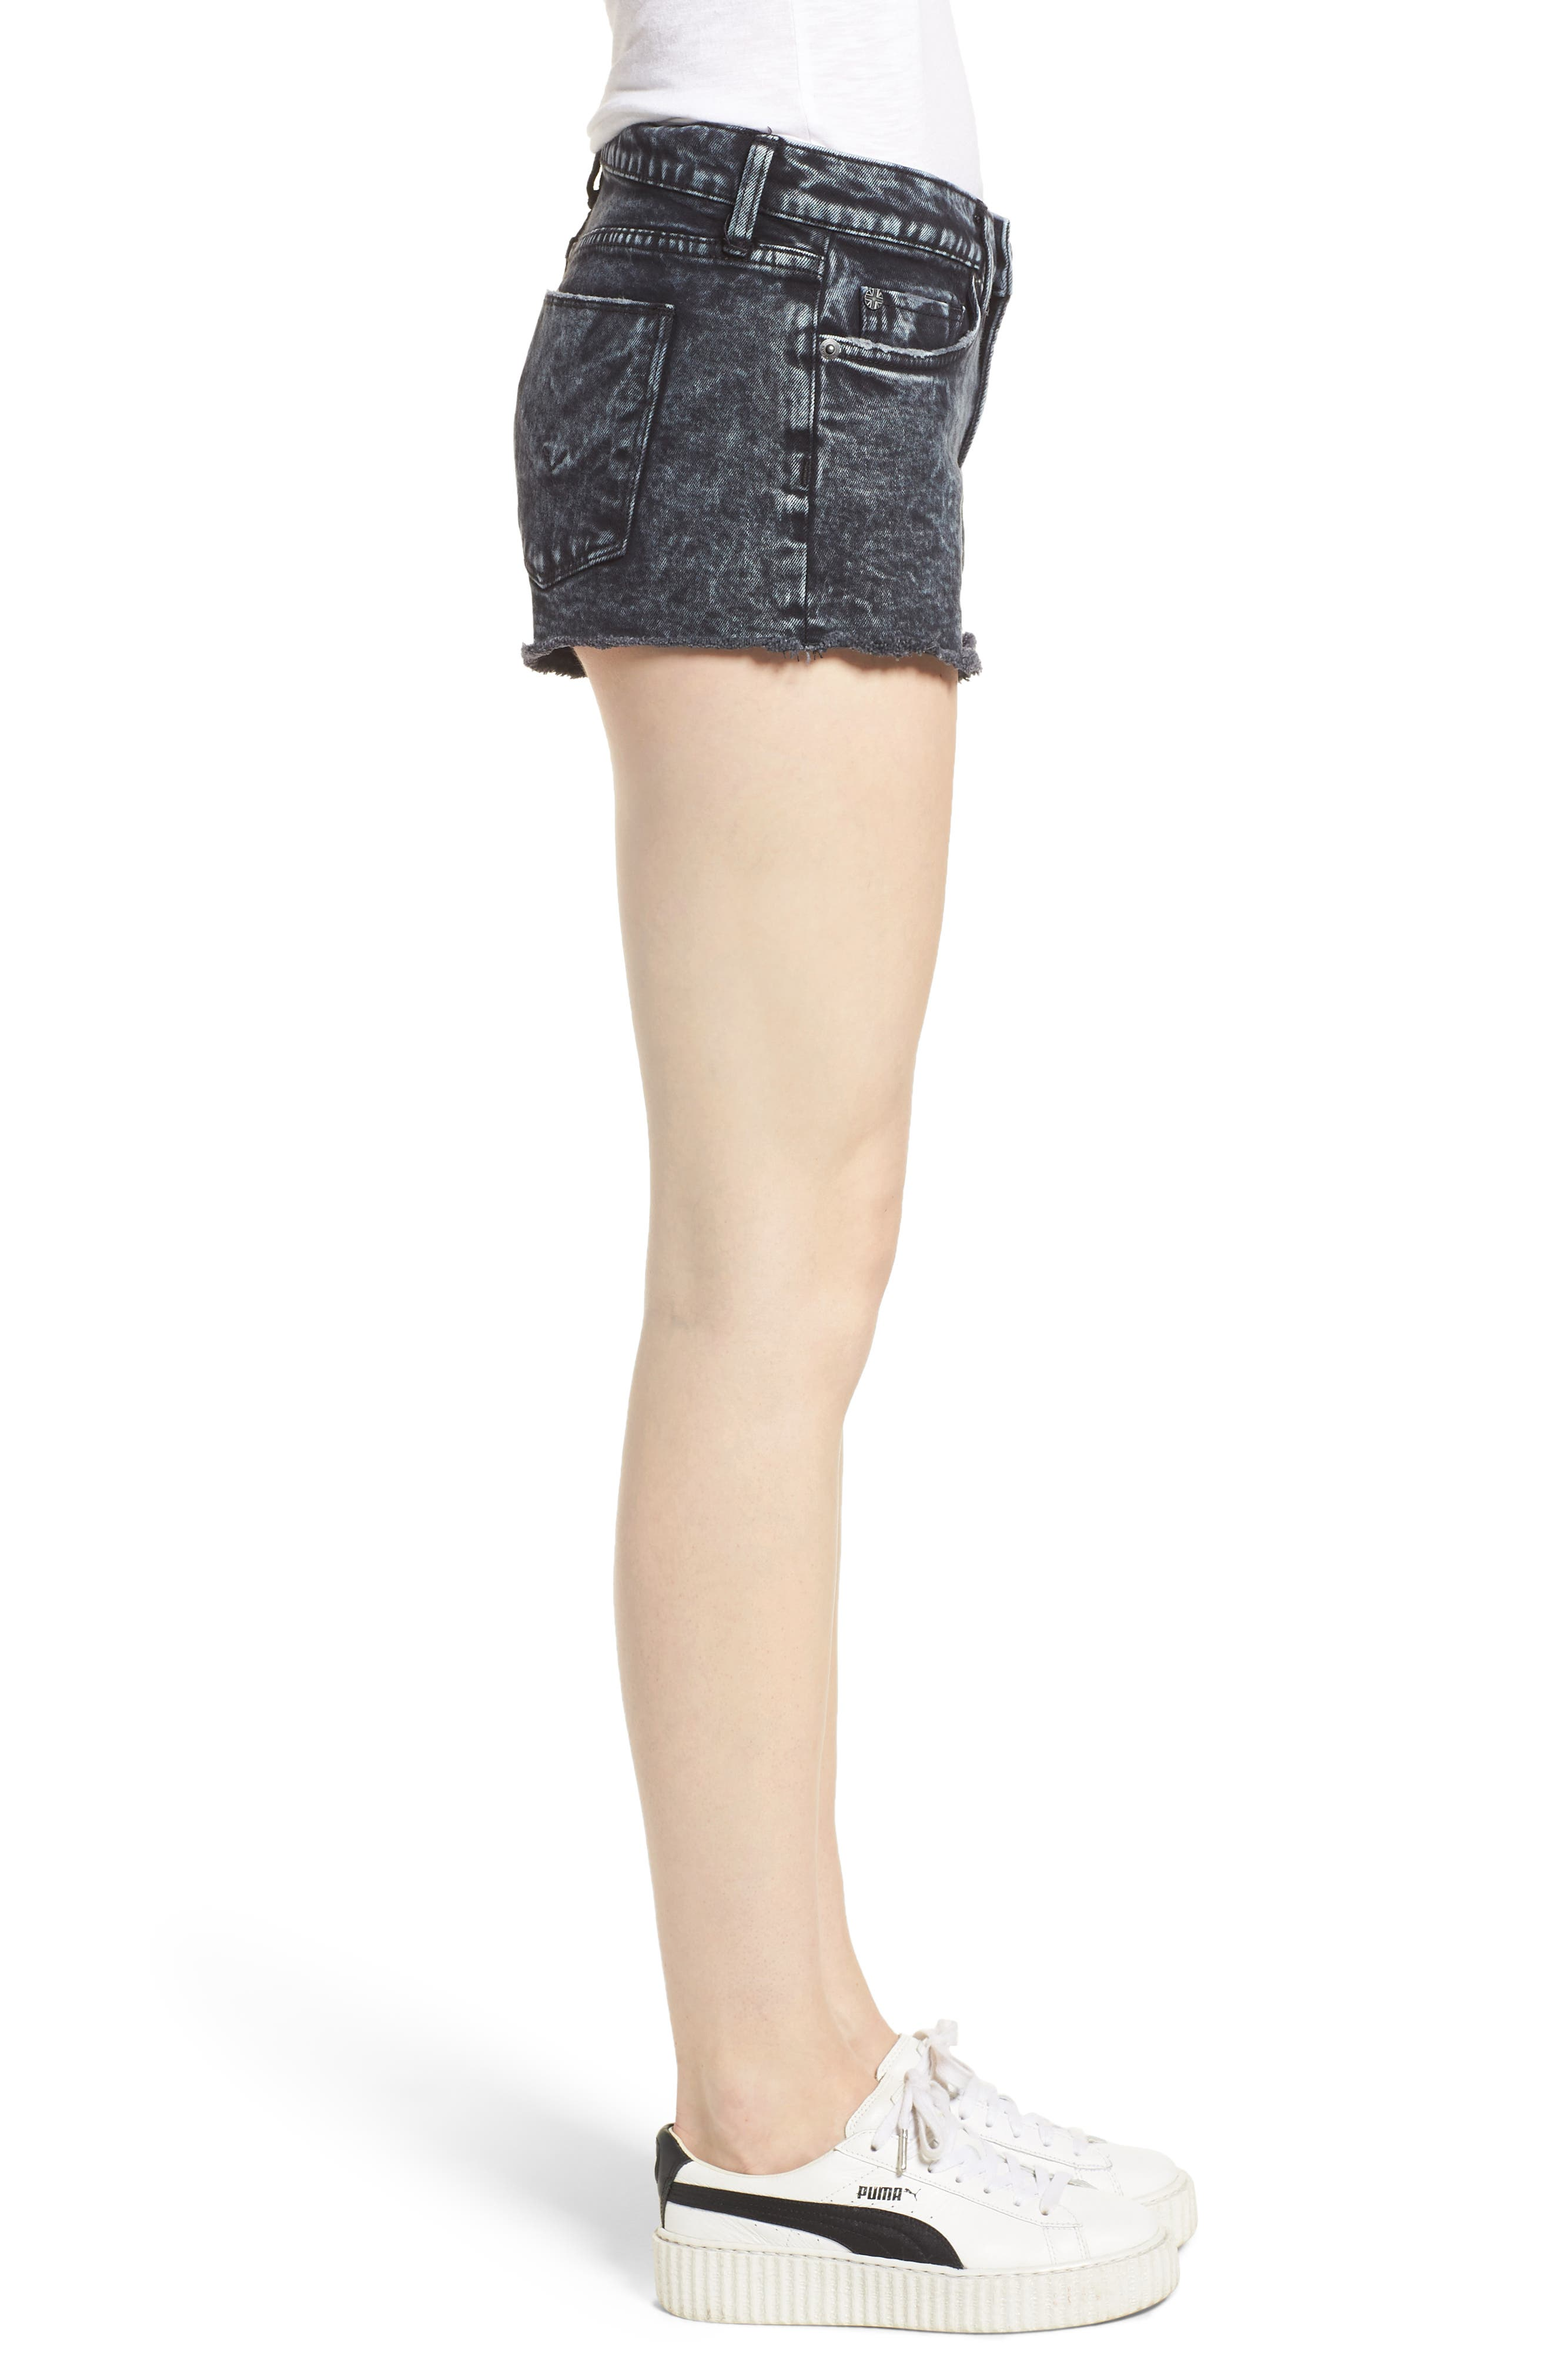 Kenzie Cutoff Jean Shorts,                             Alternate thumbnail 6, color,                             Dainty